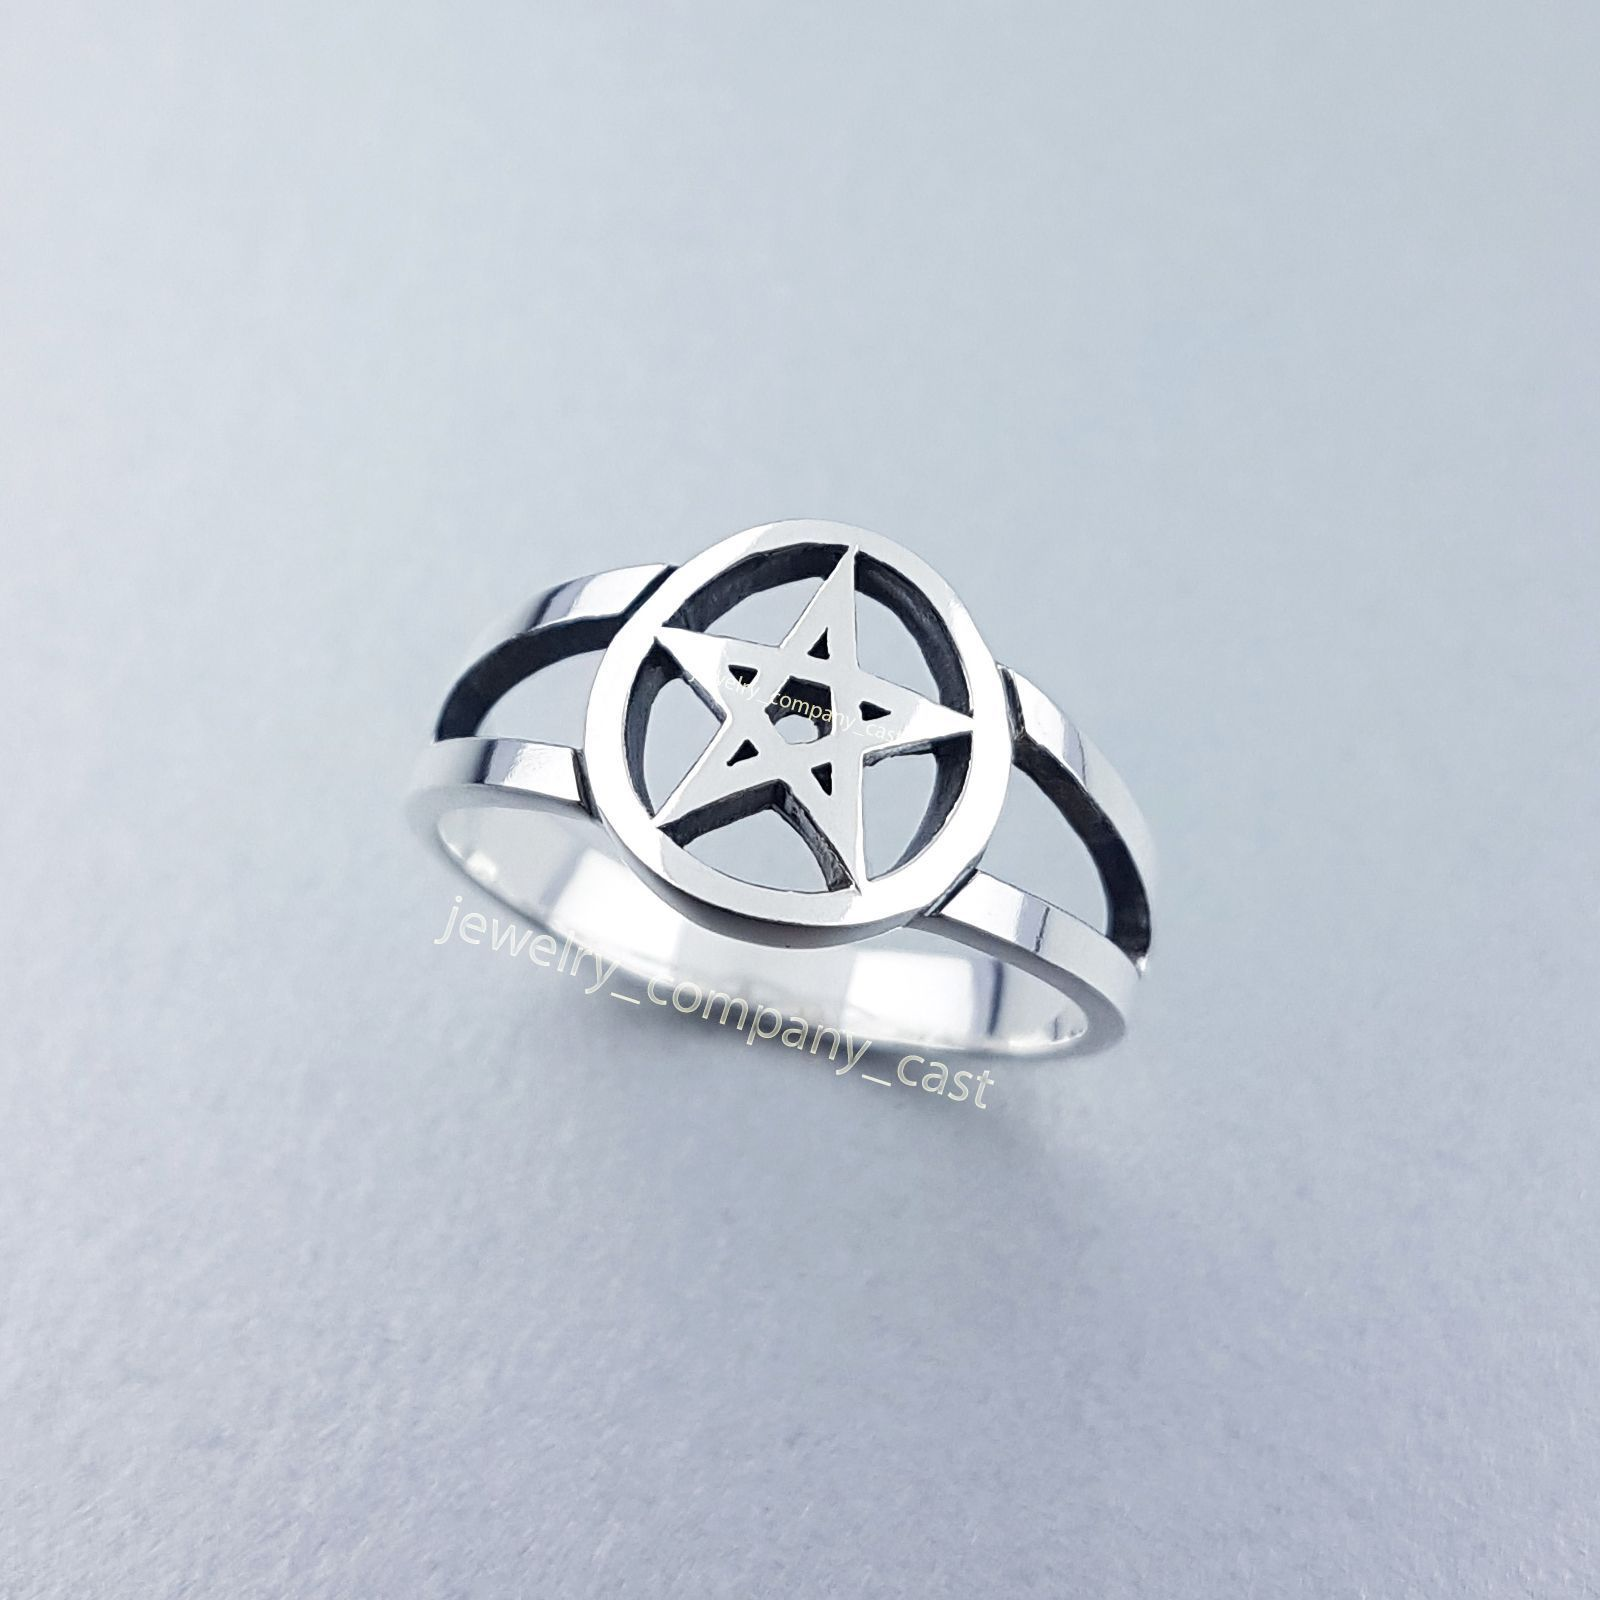 gothic part and us do skull engagement till death rings pin nightrider matching women jewelry men s